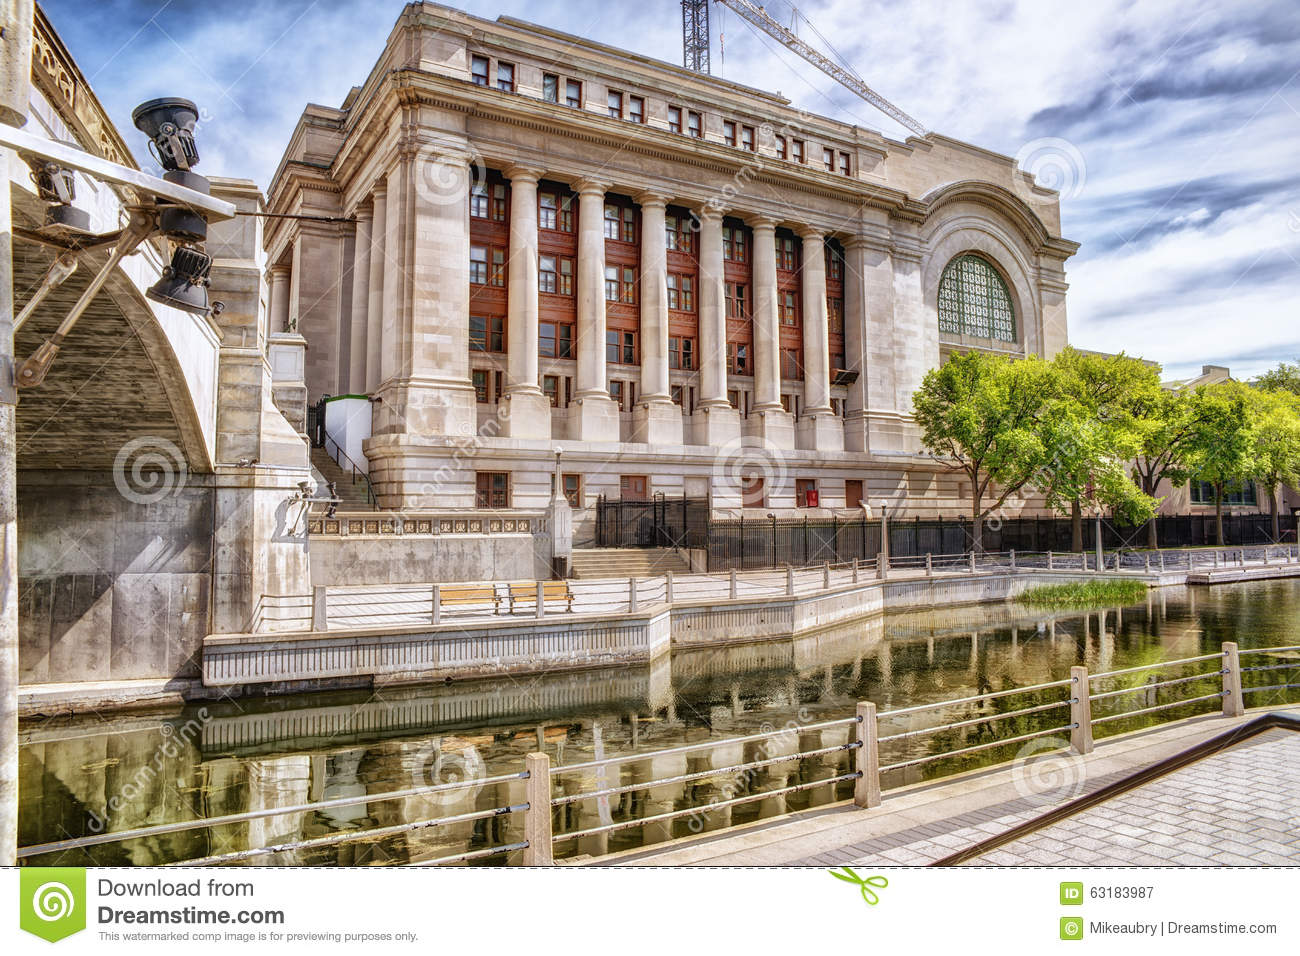 Old building at ottawa ontario stock image image of canada royalty free stock photo thecheapjerseys Image collections